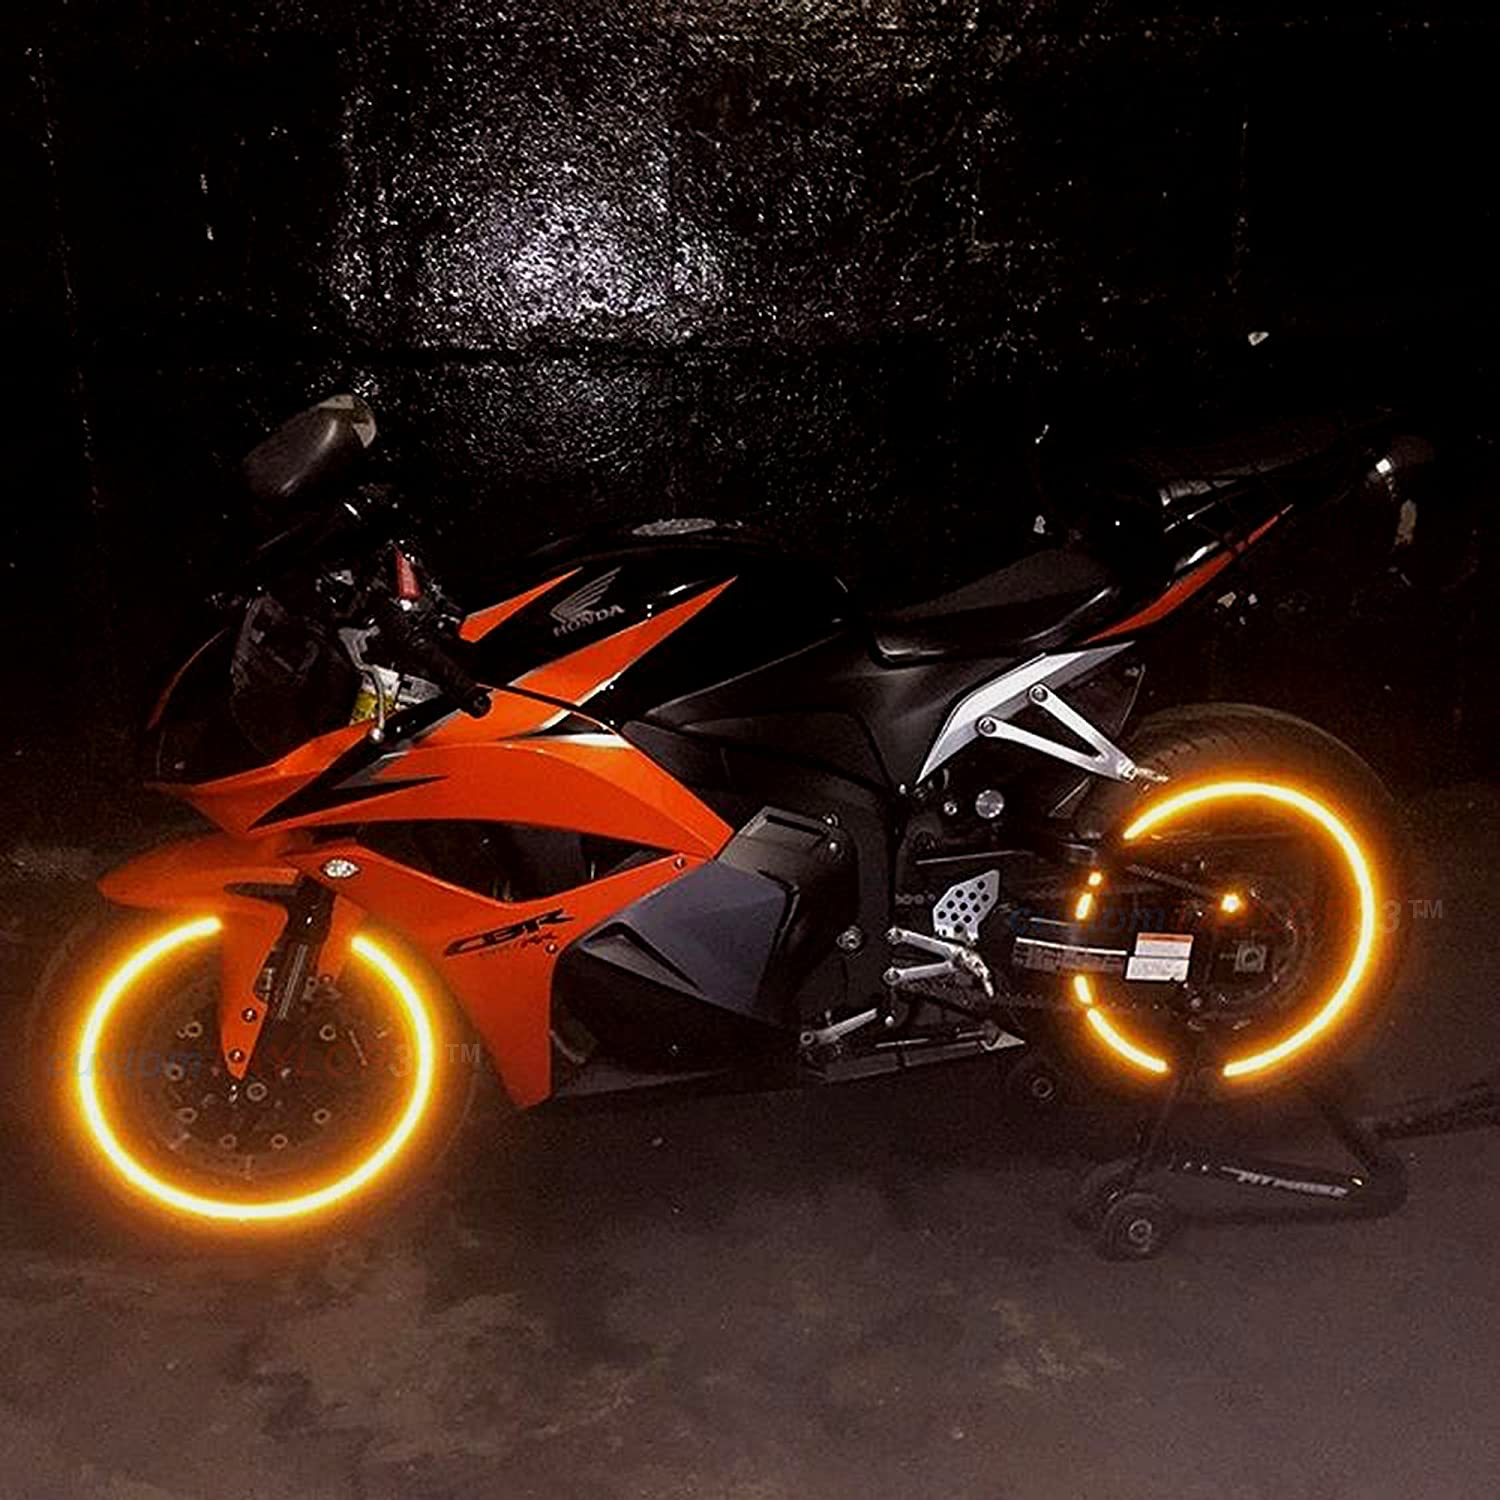 Rim Size 10 Must select your rim size customTAYLOR33 All Vehicles Orange High Intensity Grade Reflective Safety Rim Tapes